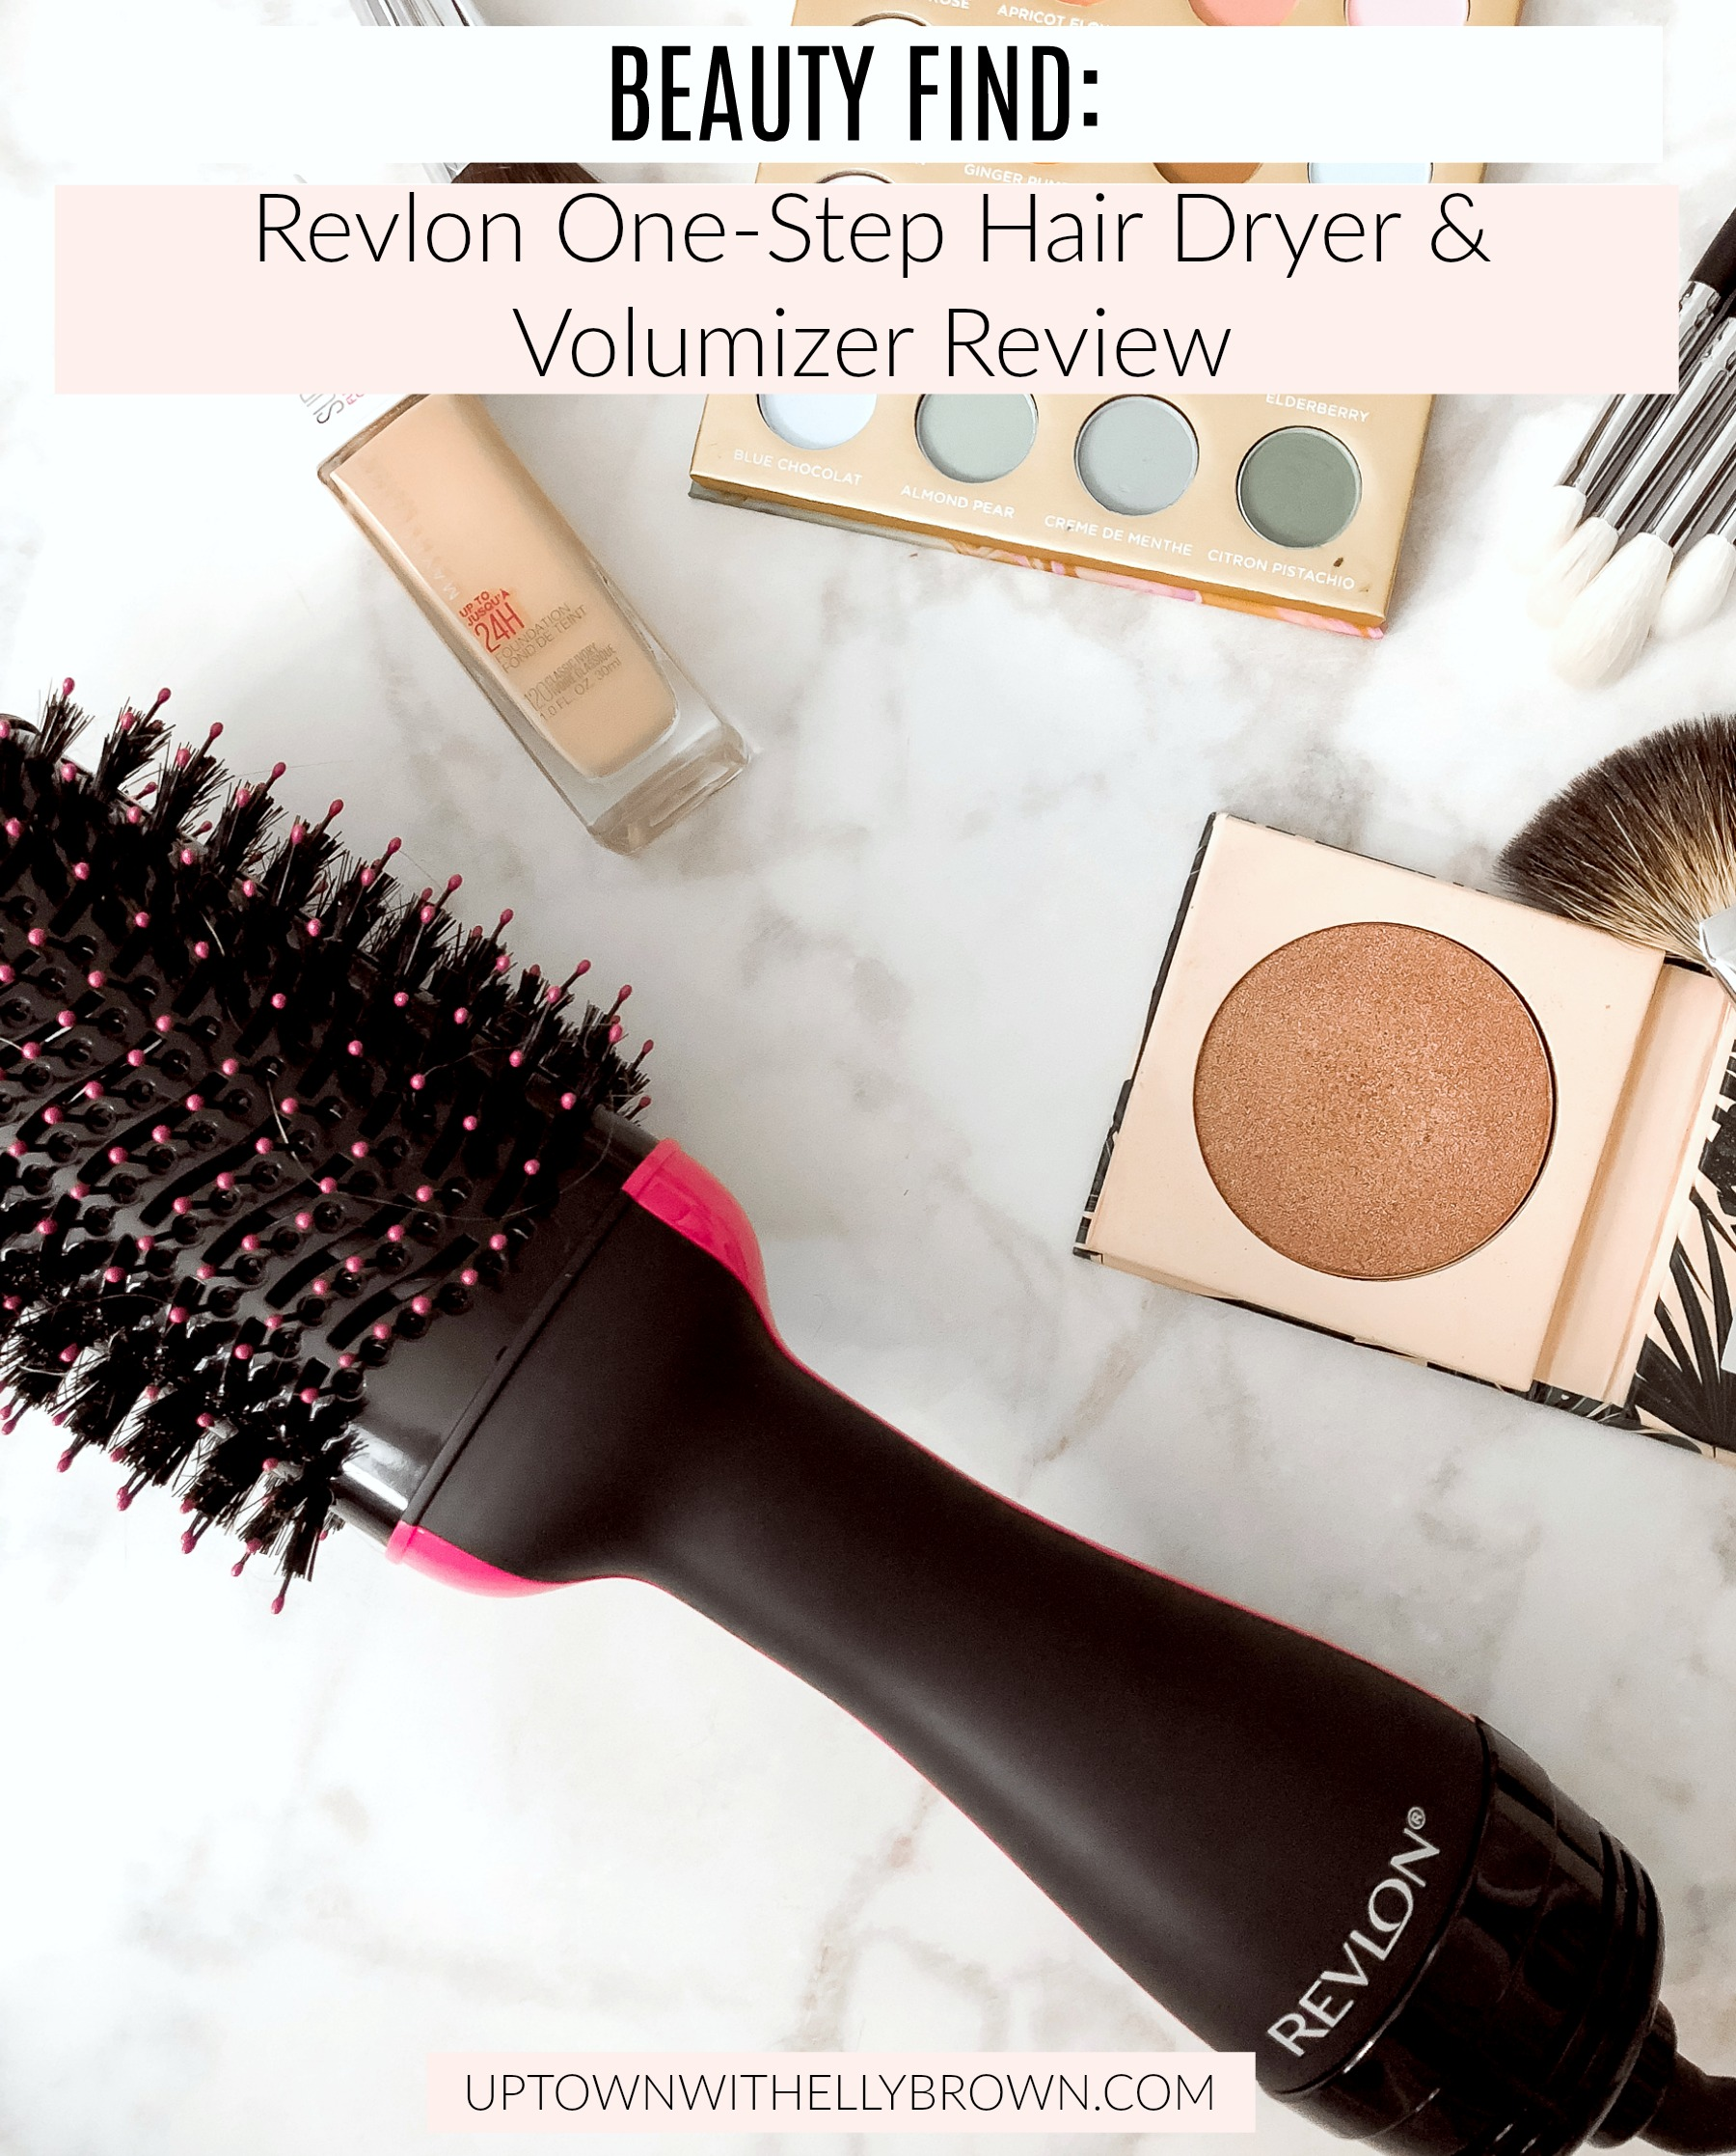 Houston beauty blogger Uptown with Elly Brown reviews the Revlon One-Step Hair Dryer & Volumizer and why she won't ever use a regular hair dryer!